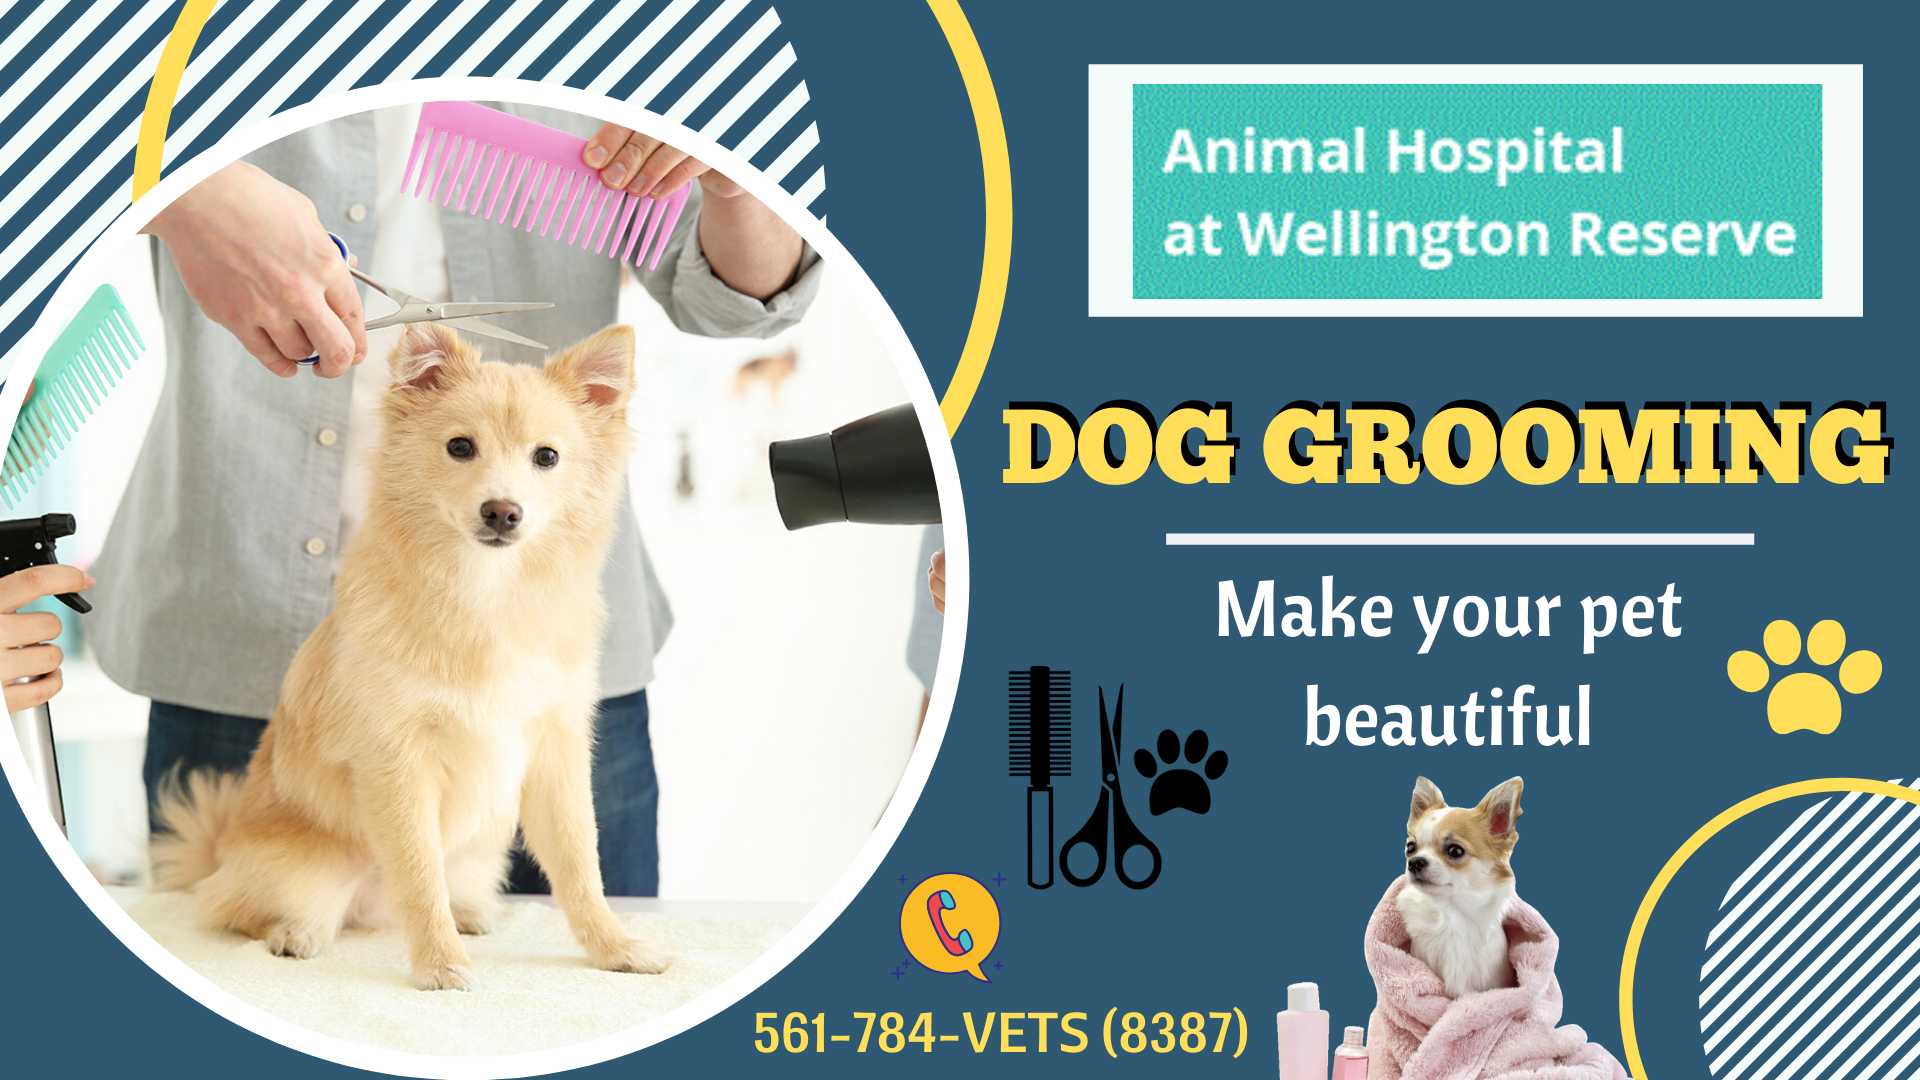 FullTime Pet Grooming Services Pet clinic, Animal